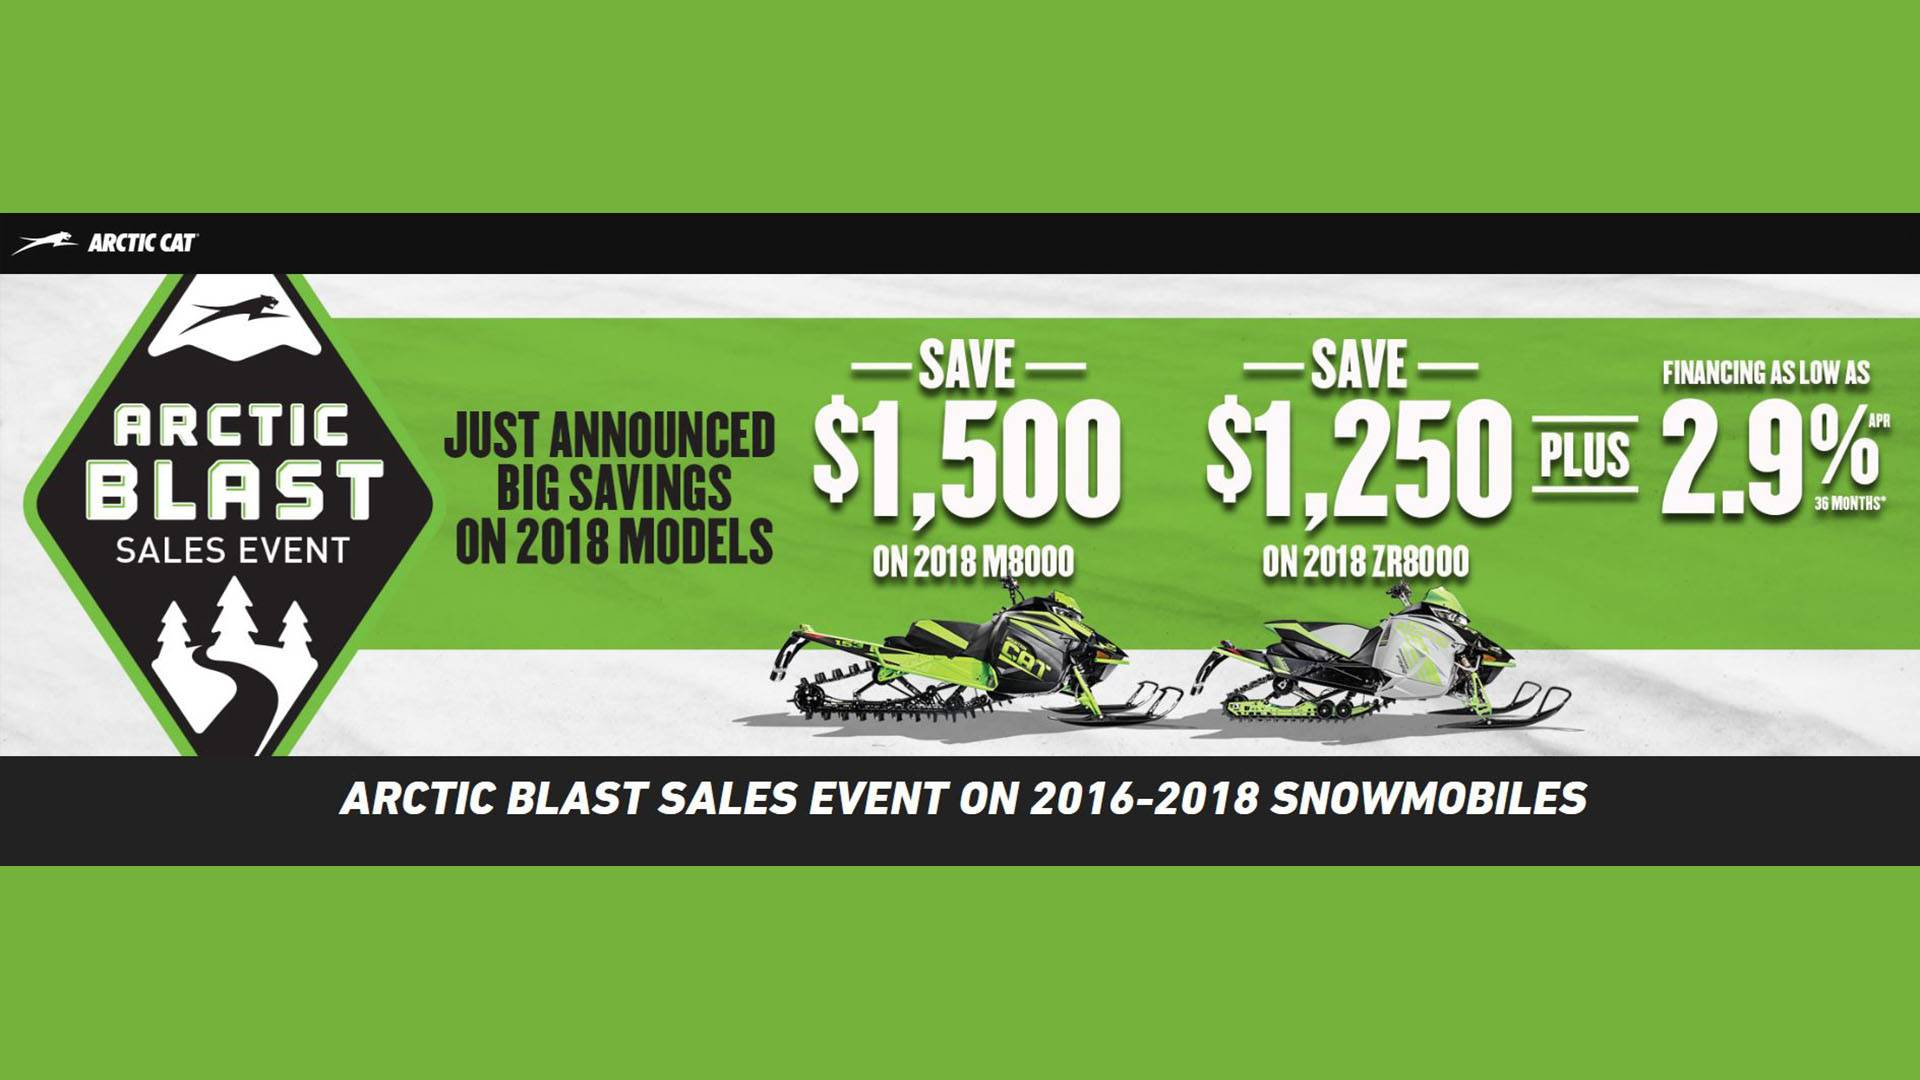 Arctic Cat - Arctic Blast Sales Event